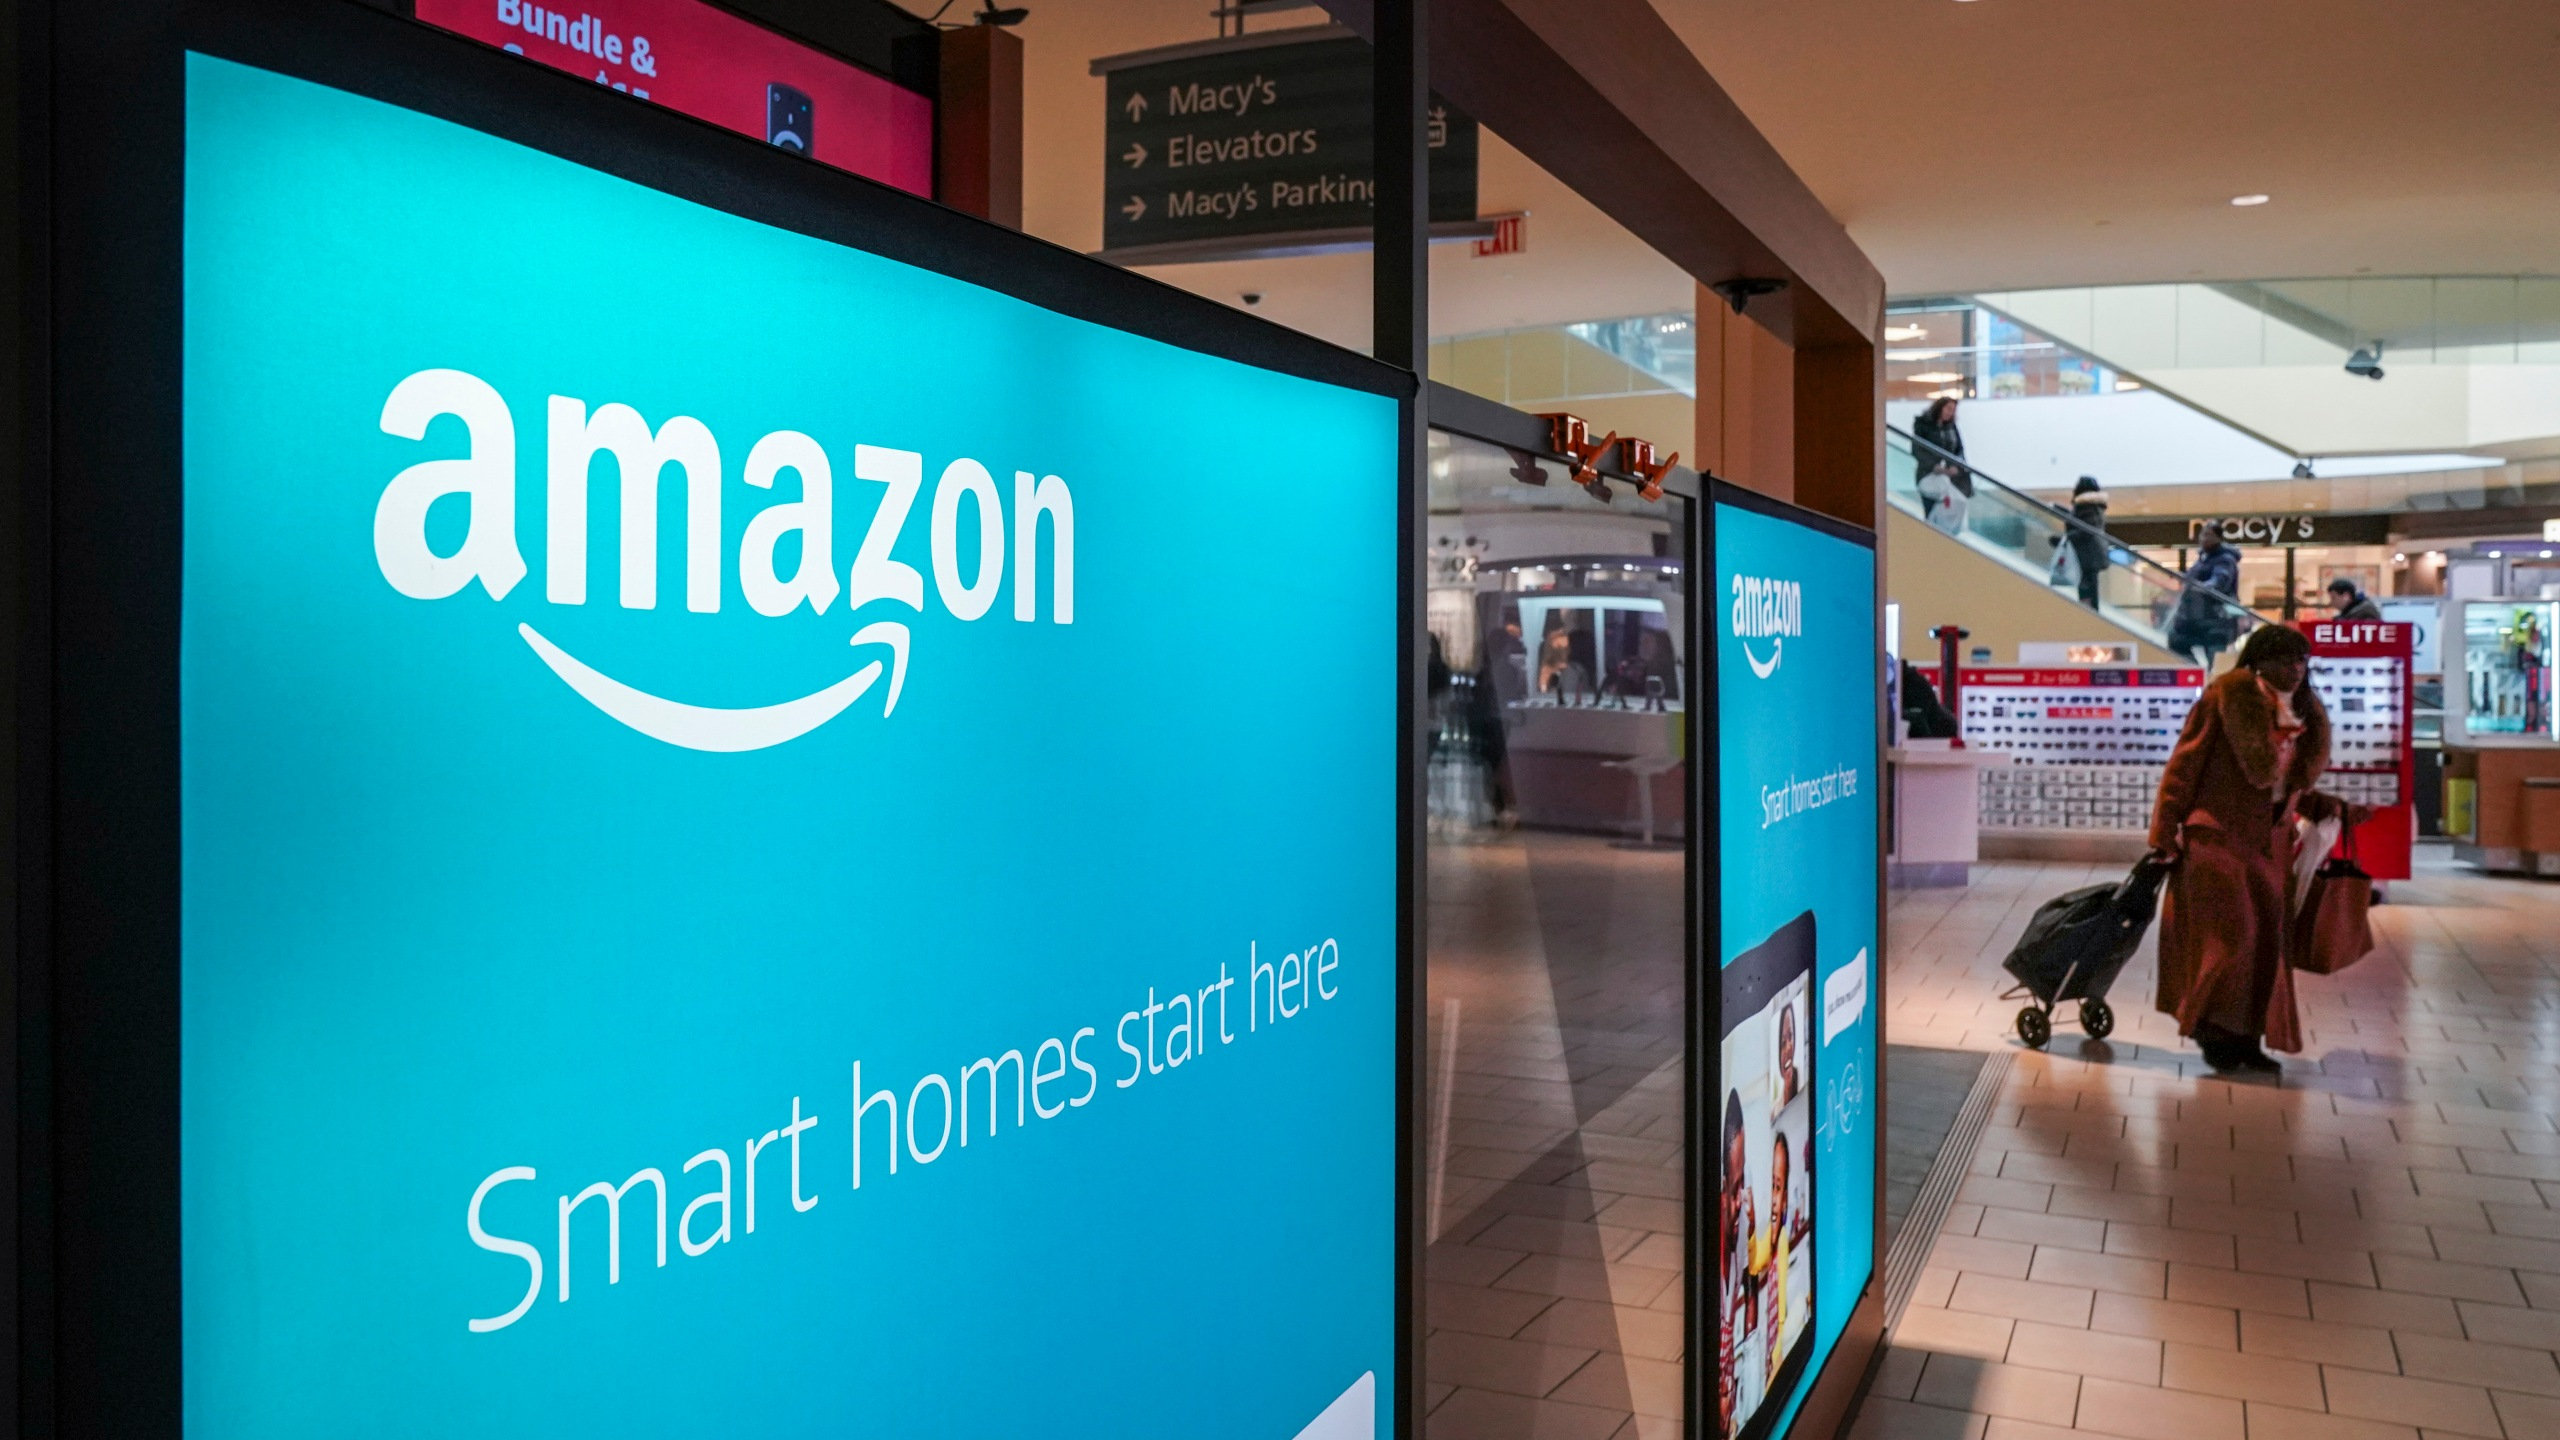 0An Amazon Pop-Up kiosk-style store stands inside the Queens Center Shopping Mall, March 7, 2019 in the Queens borough of New York City. (Credit: Drew Angerer/Getty Images)